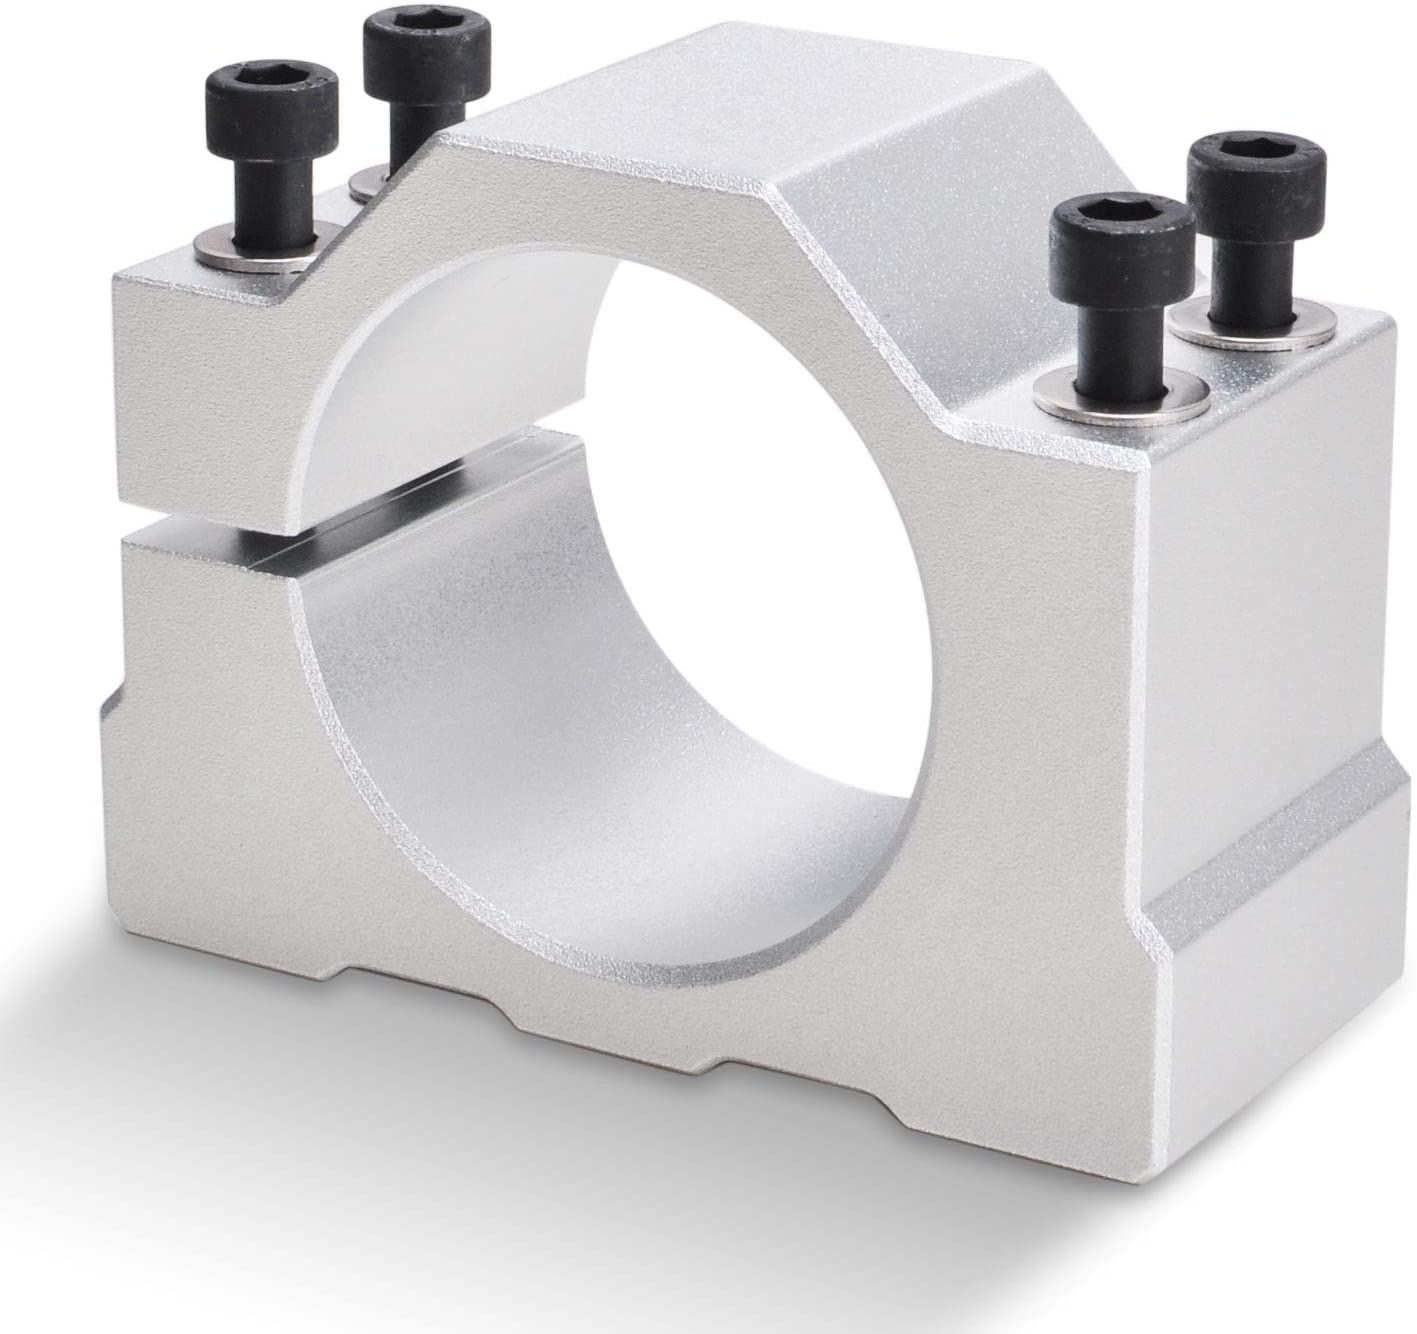 52mm Spindle Clamp Mounting Bracket Clamp with Screws